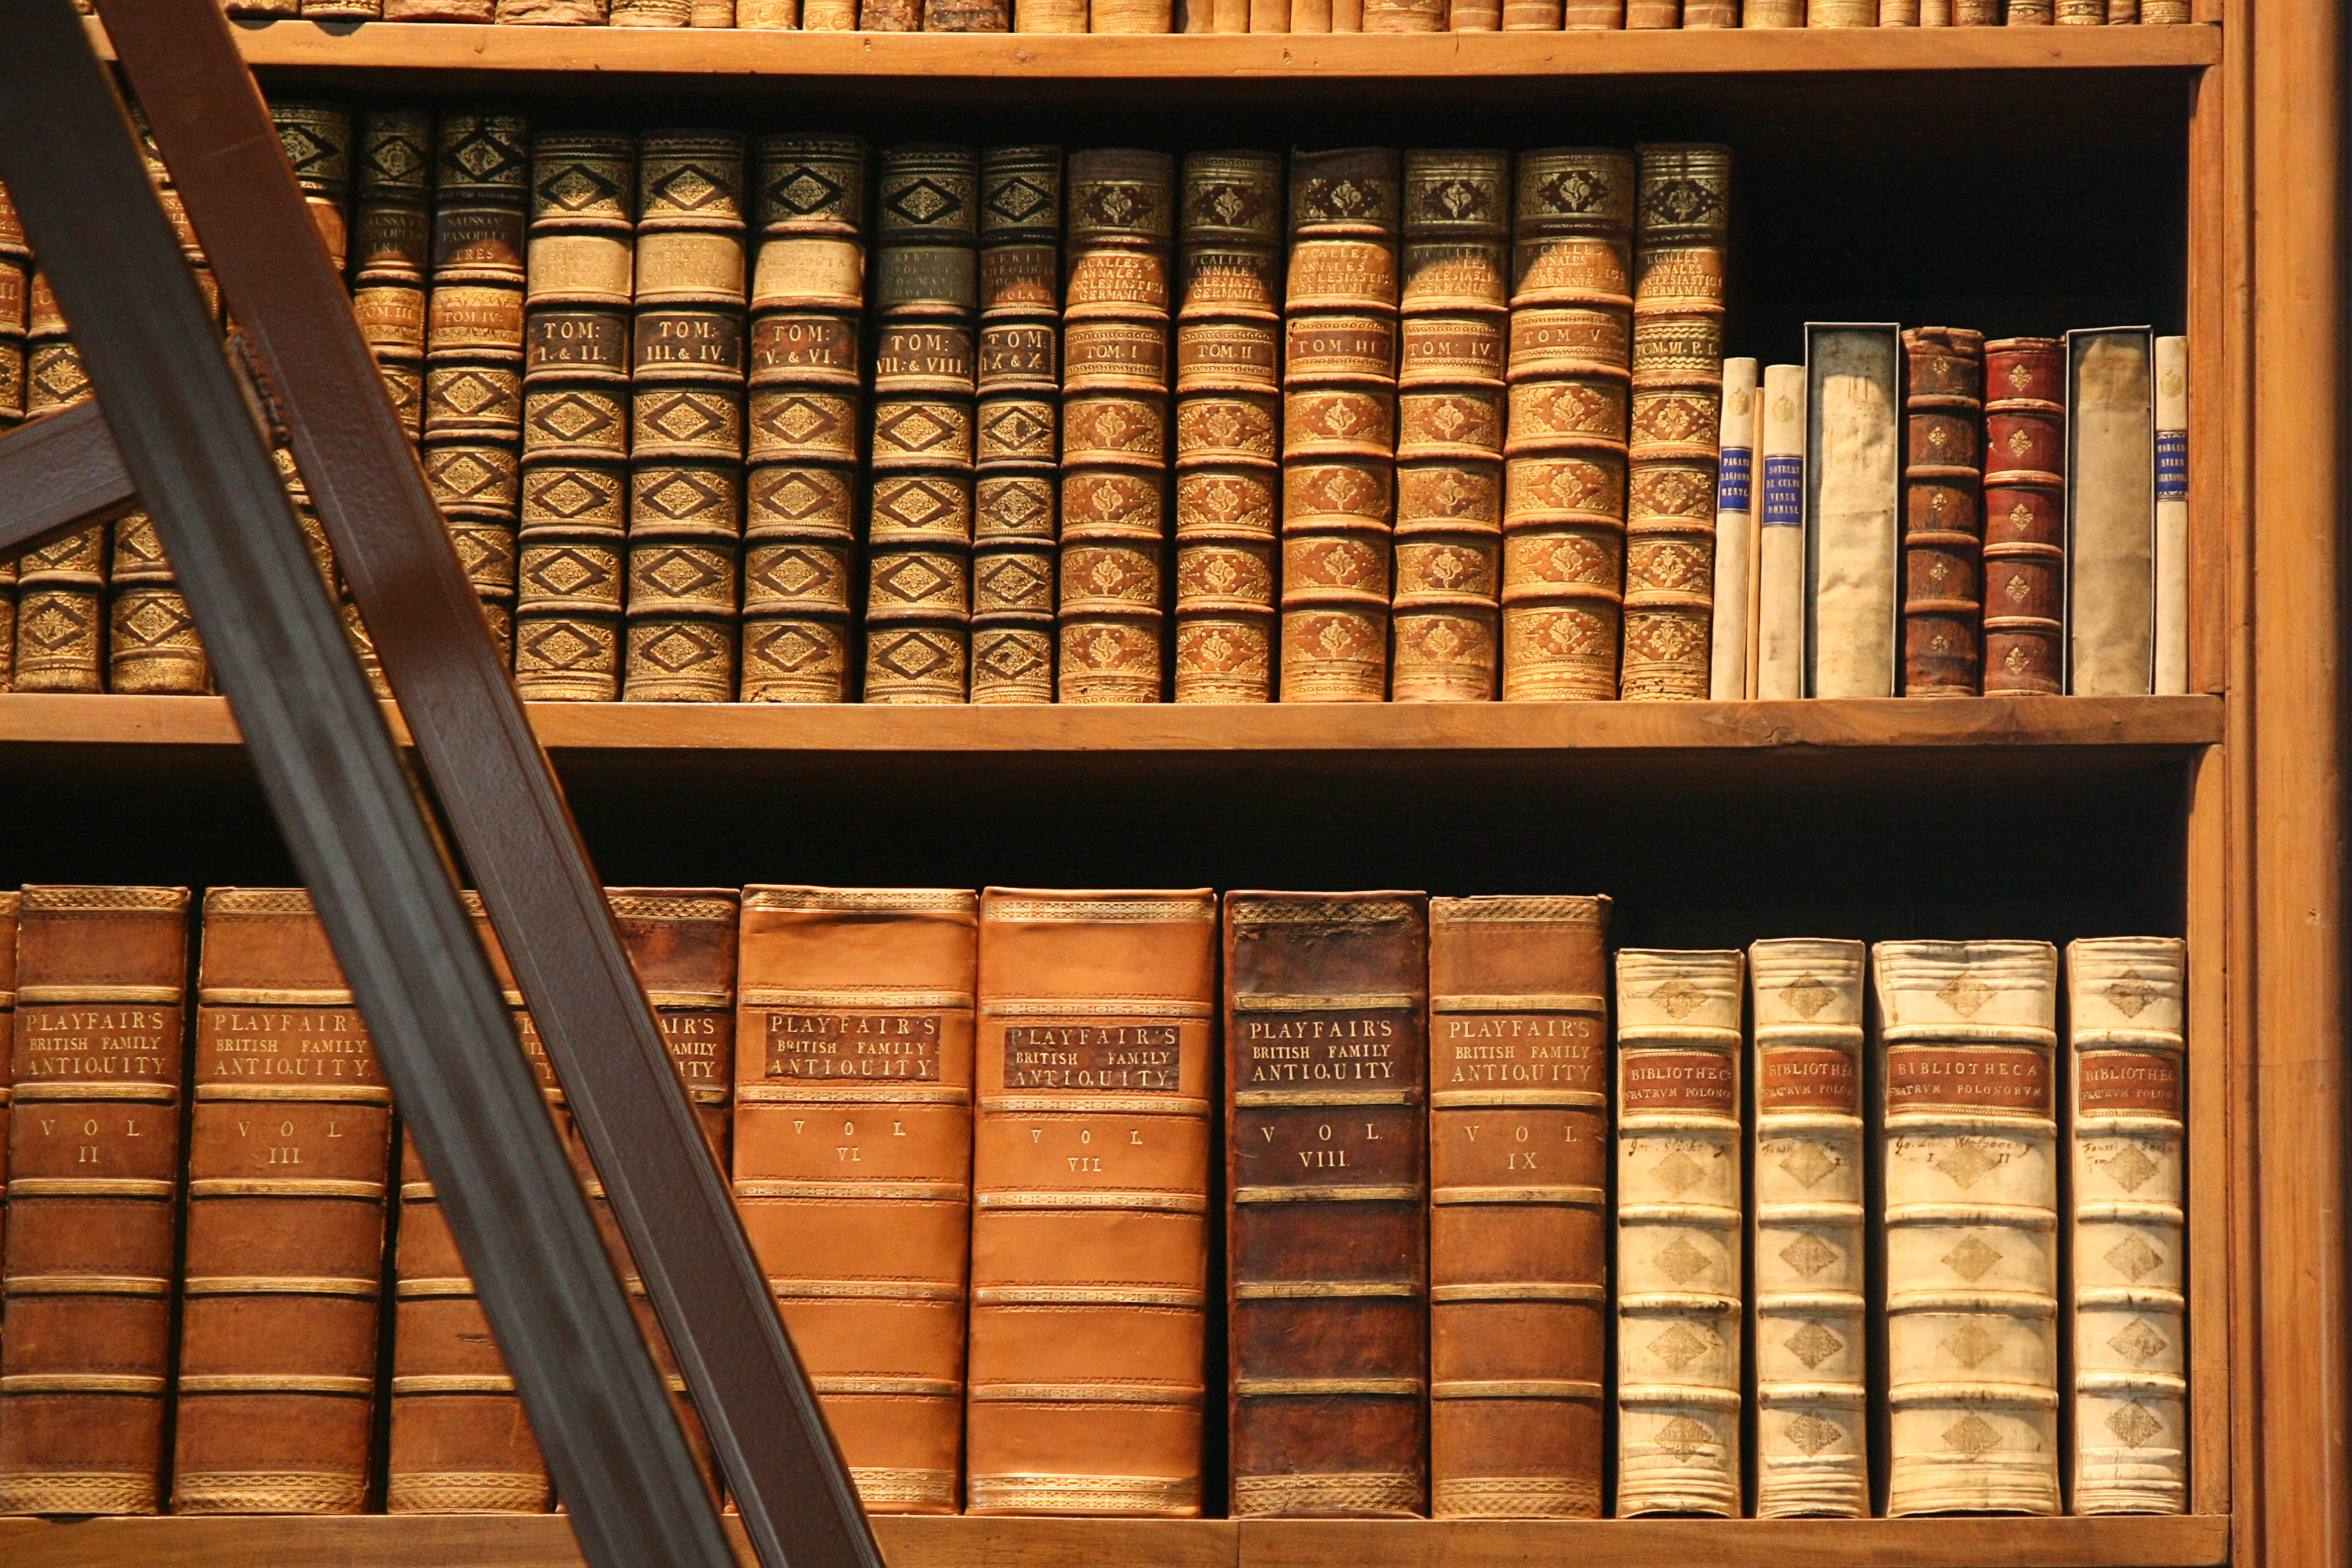 File:Bookshelf Prunksaal OeNB Vienna AT matl00786ch.jpg ...: http://commons.wikimedia.org/wiki/file:bookshelf_prunksaal_oenb_vienna_at_matl00786ch.jpg